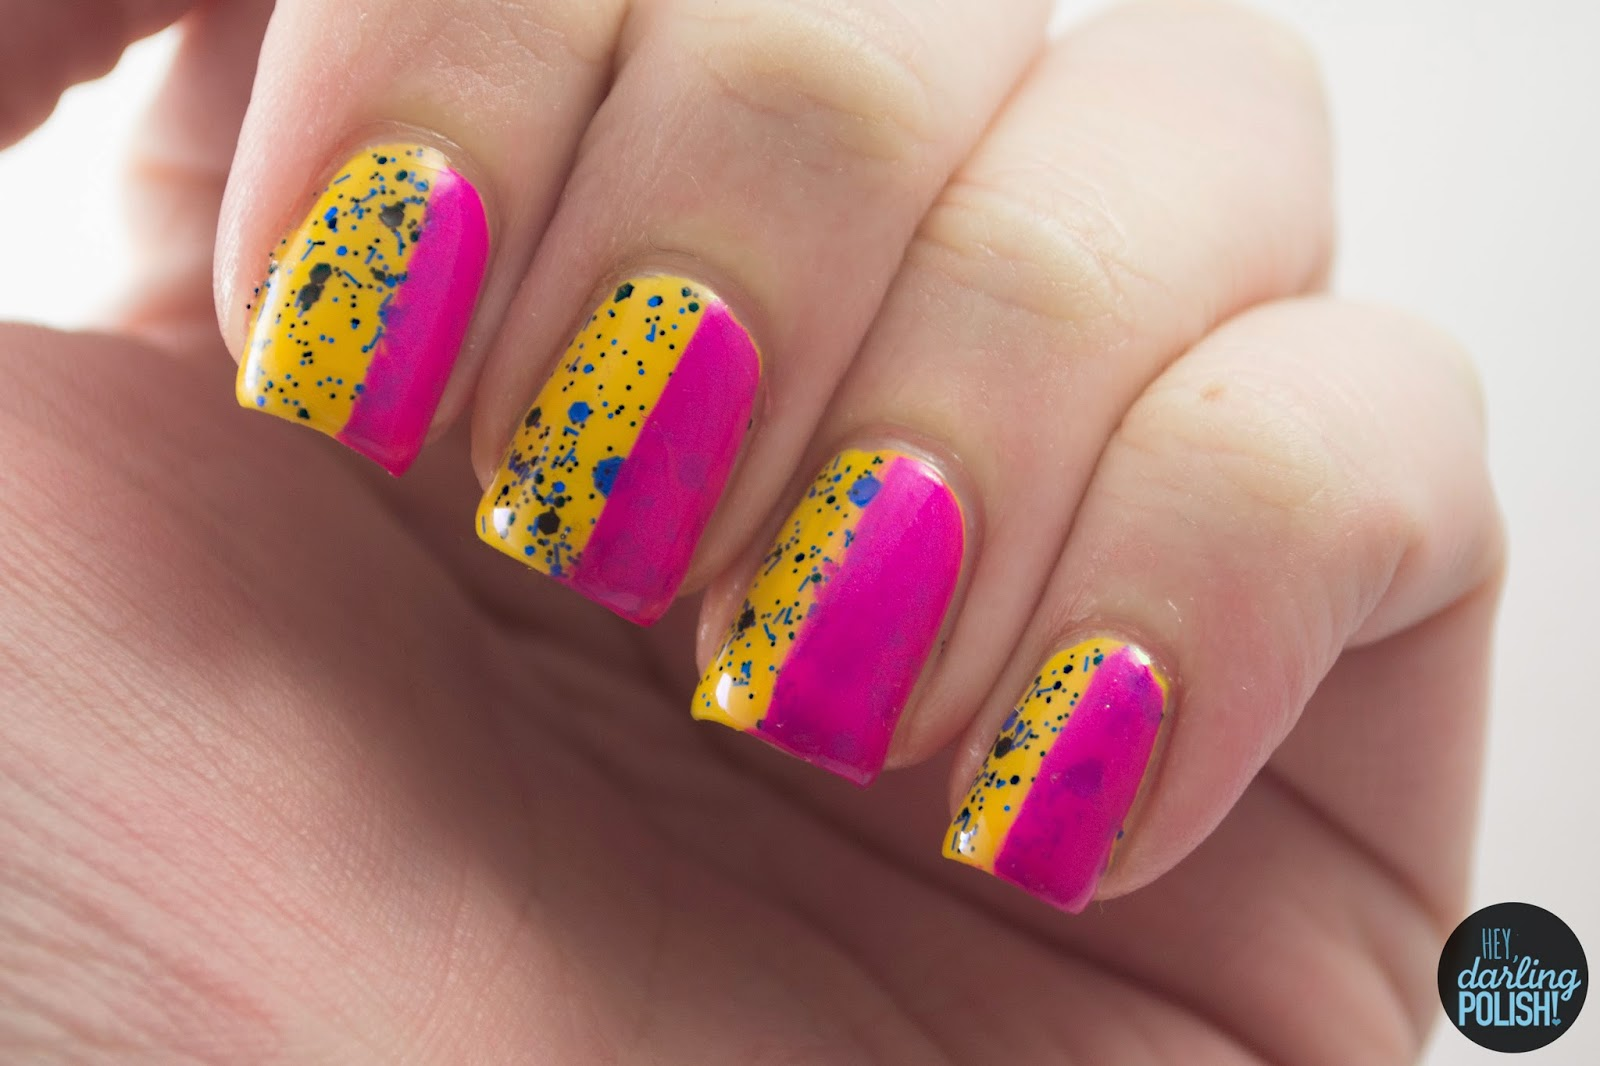 nails, nail art, nail polish, polish, yellow, pink, blue, glitter, hey darling polish, tri polish challenge, tpc, stripes